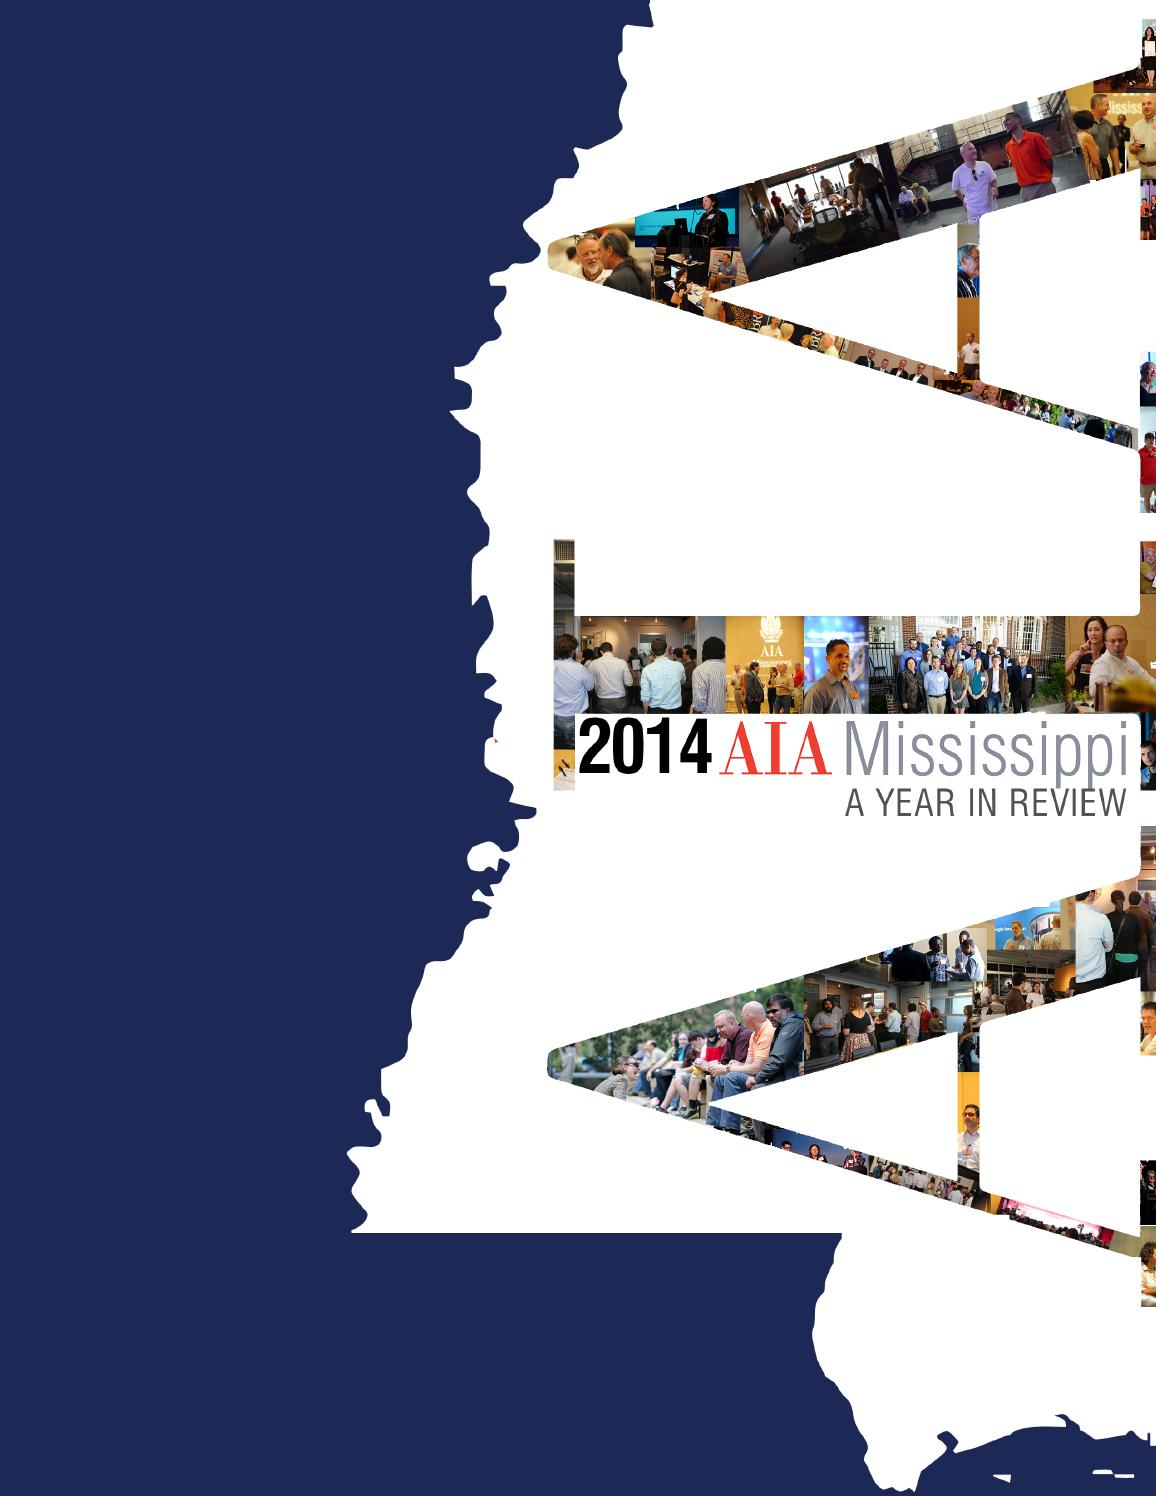 2014 AIA Mississippi Year In Review By